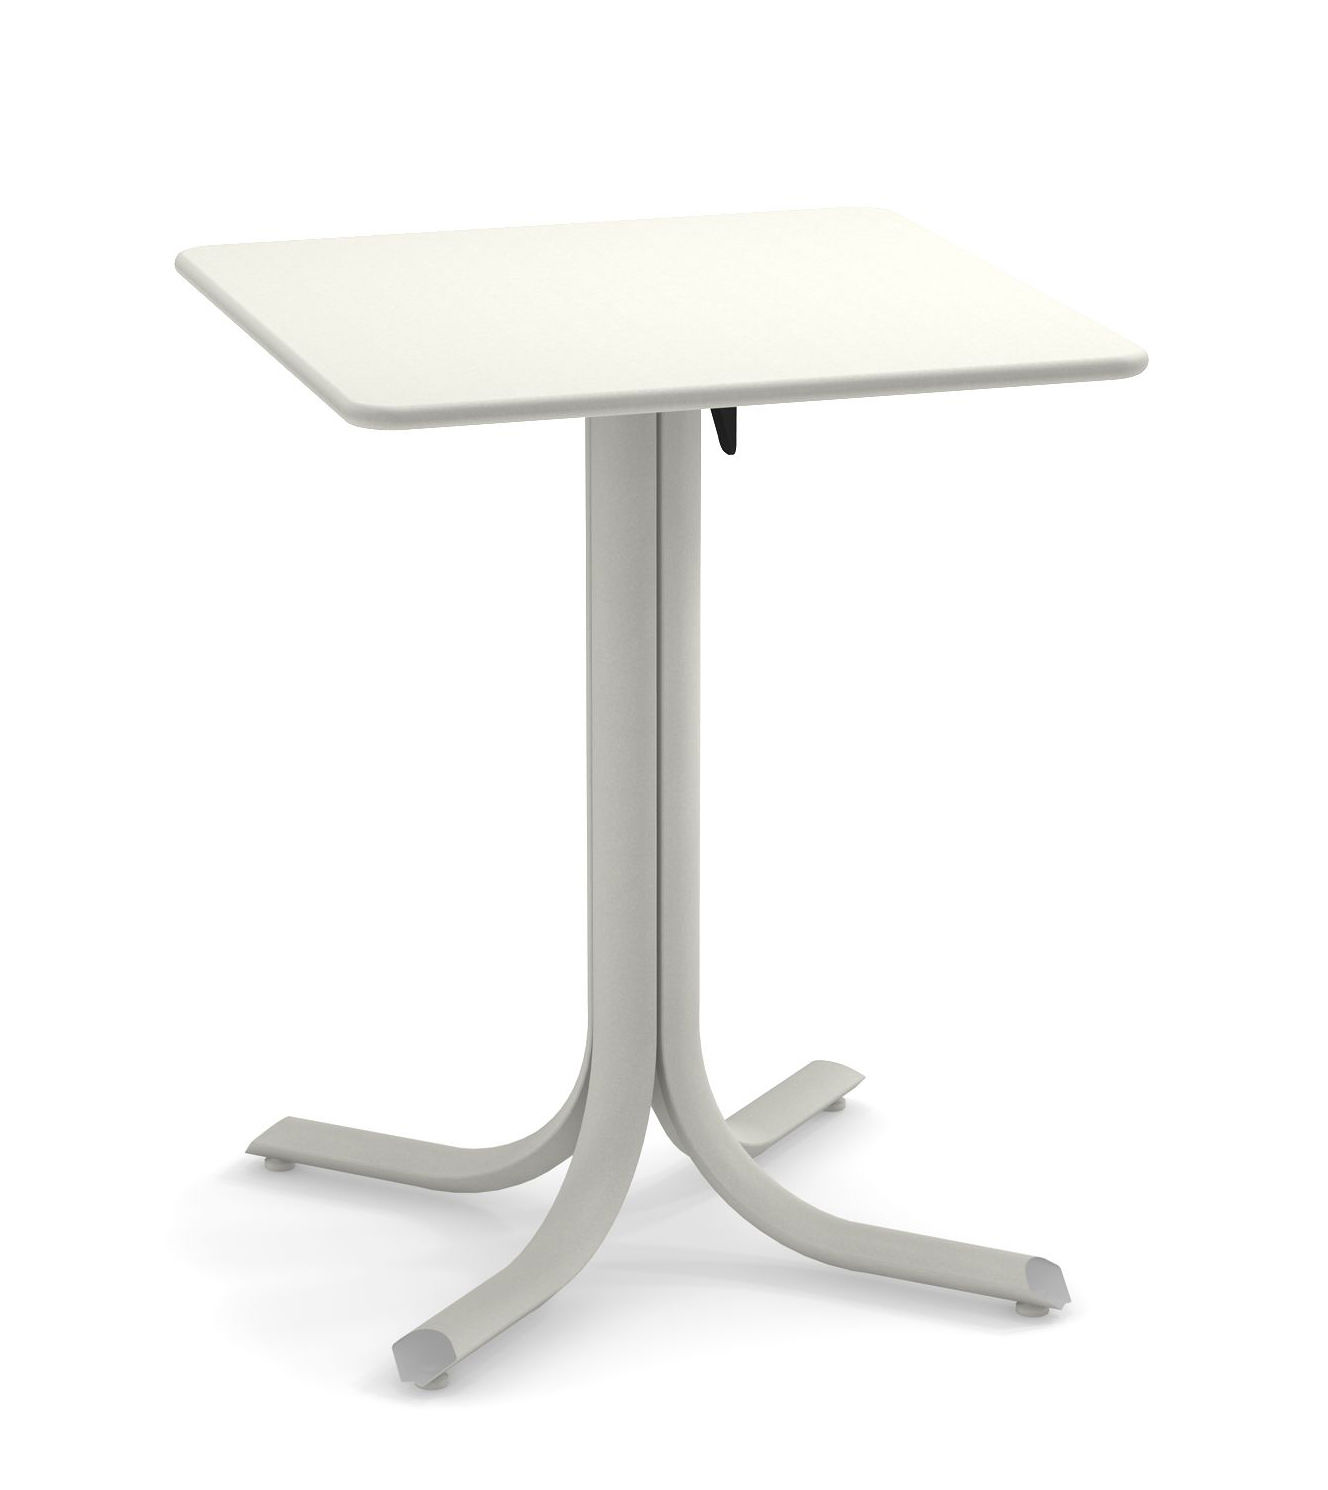 Outdoor - Garden Tables - System Foldable table - / 60 x 60 cm by Emu - White - Galvanised painted steel